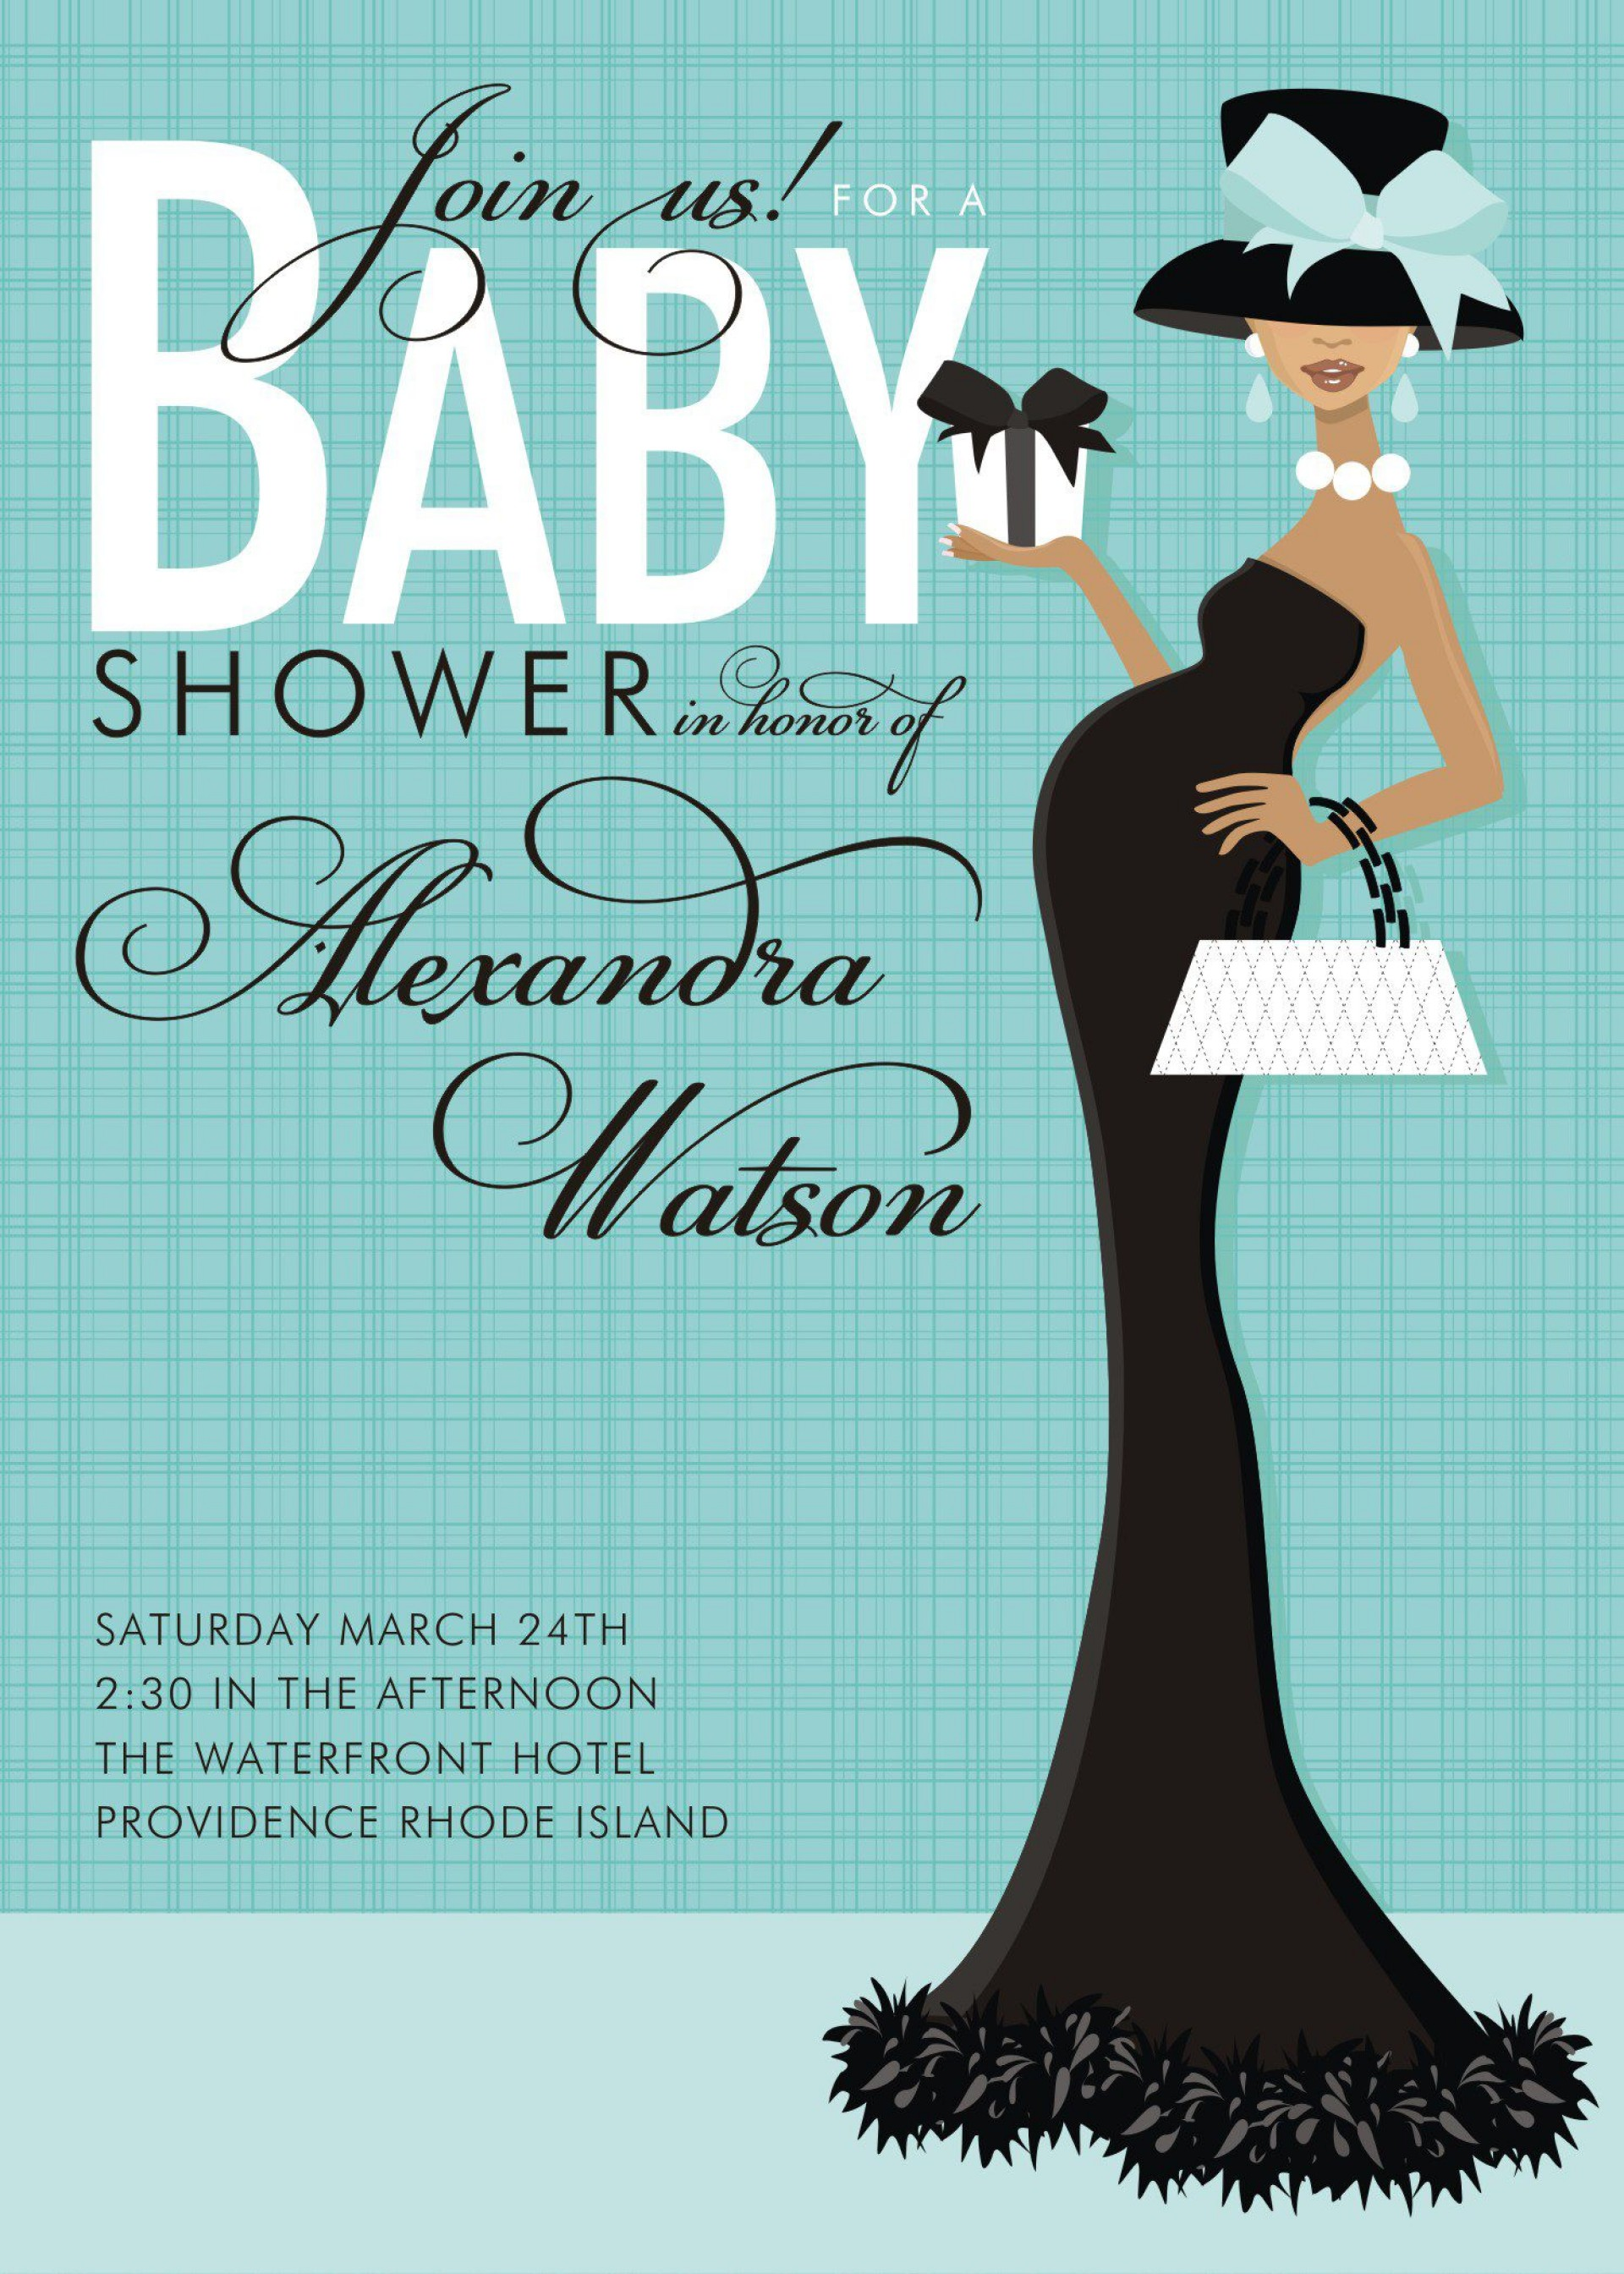 004 Imposing Baby Shower Invite Template Word High Resolution  Invitation Wording Sample Free Example1920